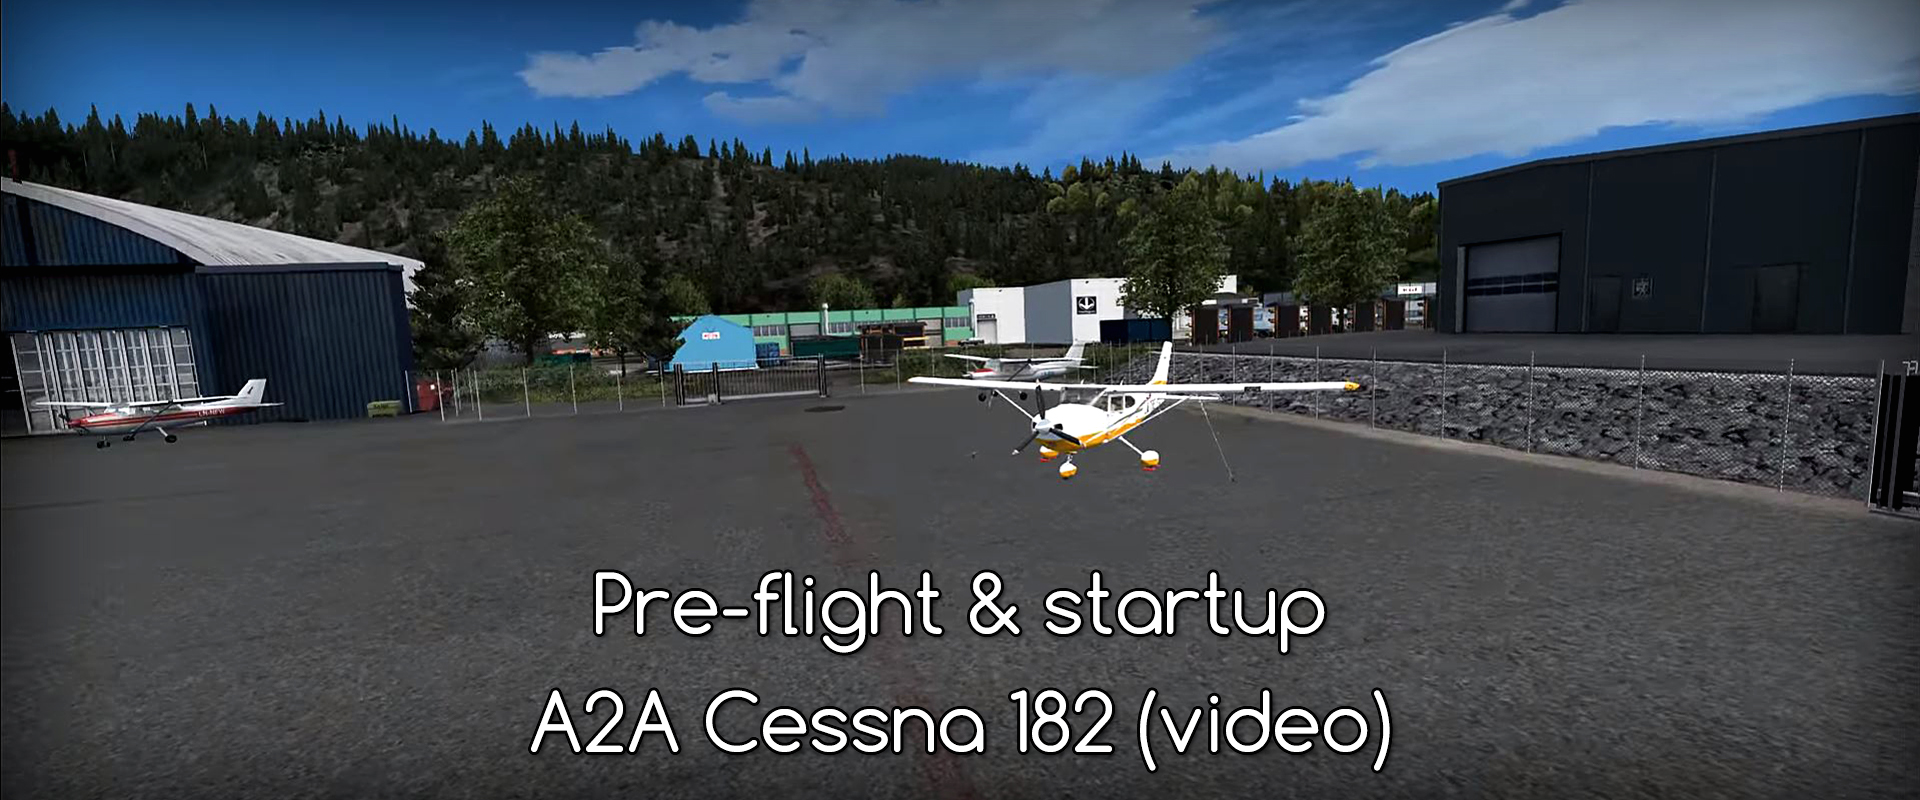 [A2A-AccuSim #2] Pre-flight, startup and runup (Cessna 182)